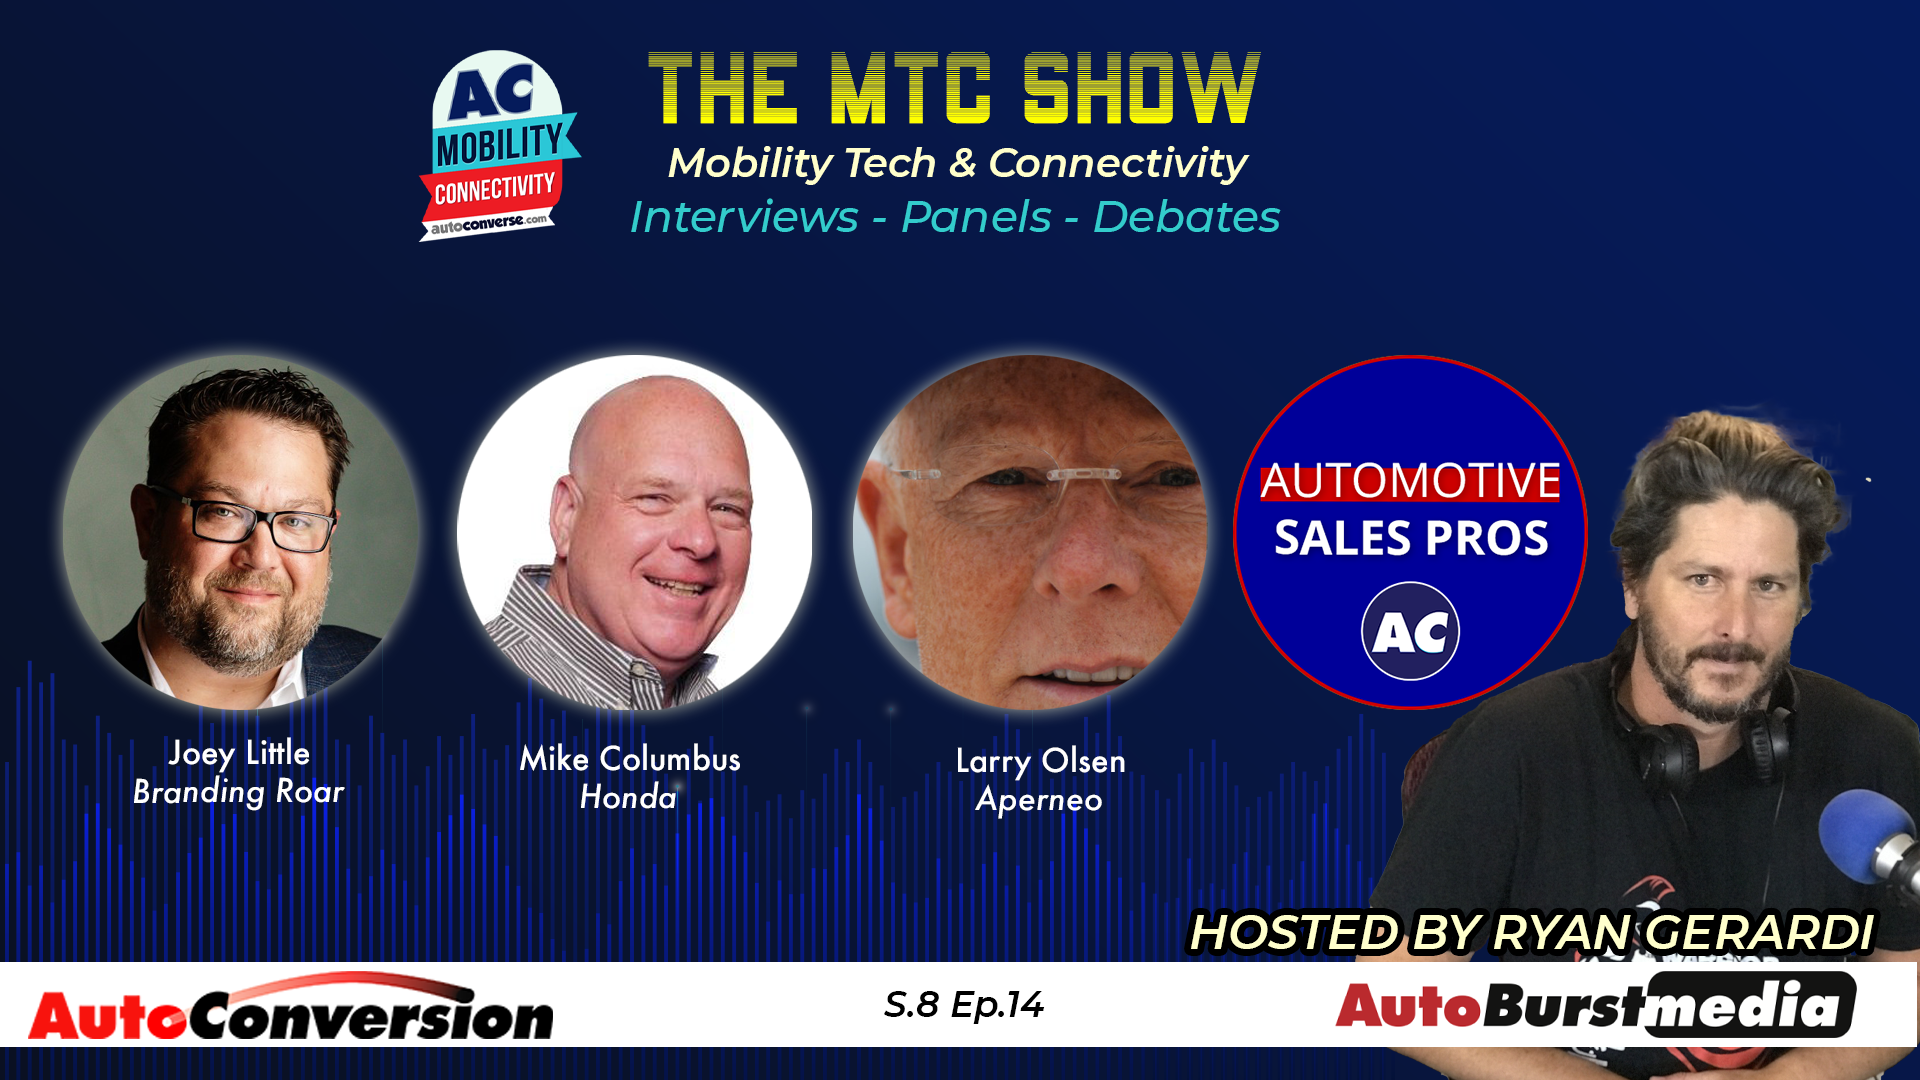 LIVE WED NOV 18. Major Milestones for Tesla and SpaceX, Automotive Sales Talk: Supply, Demand, and Retention